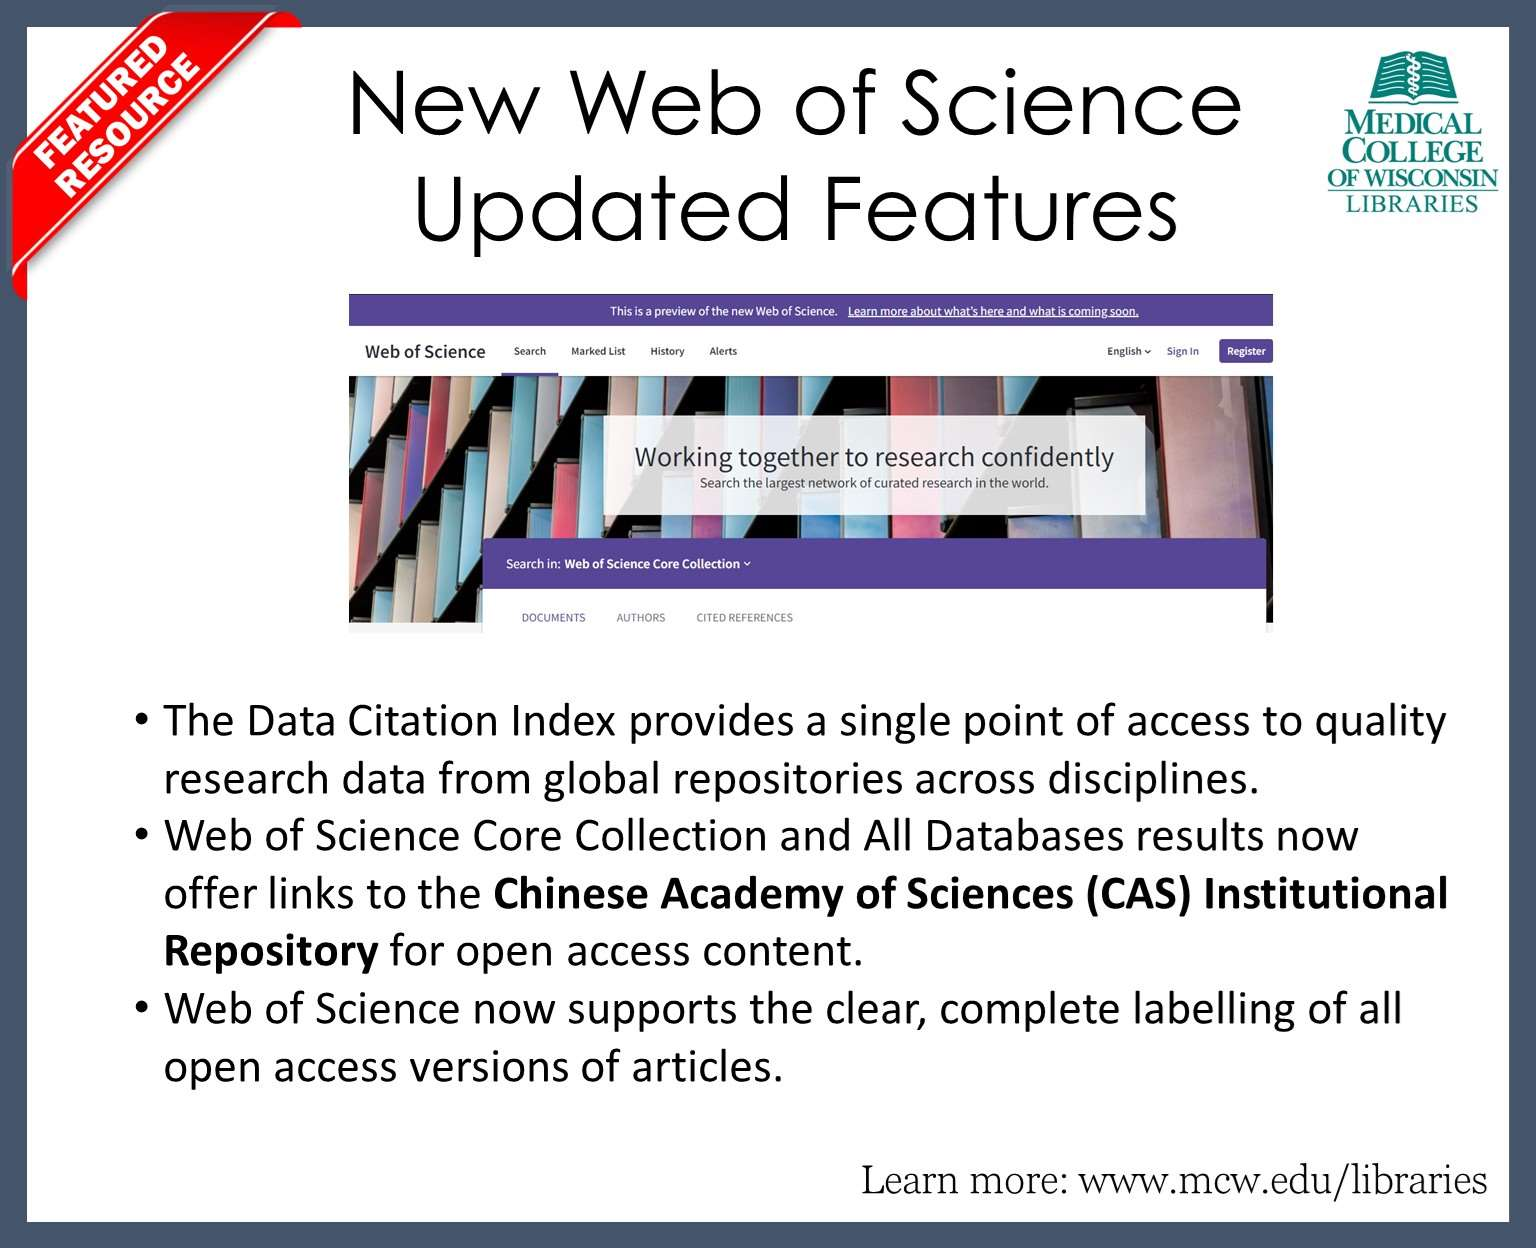 Find out more about Web of Science's updated features.